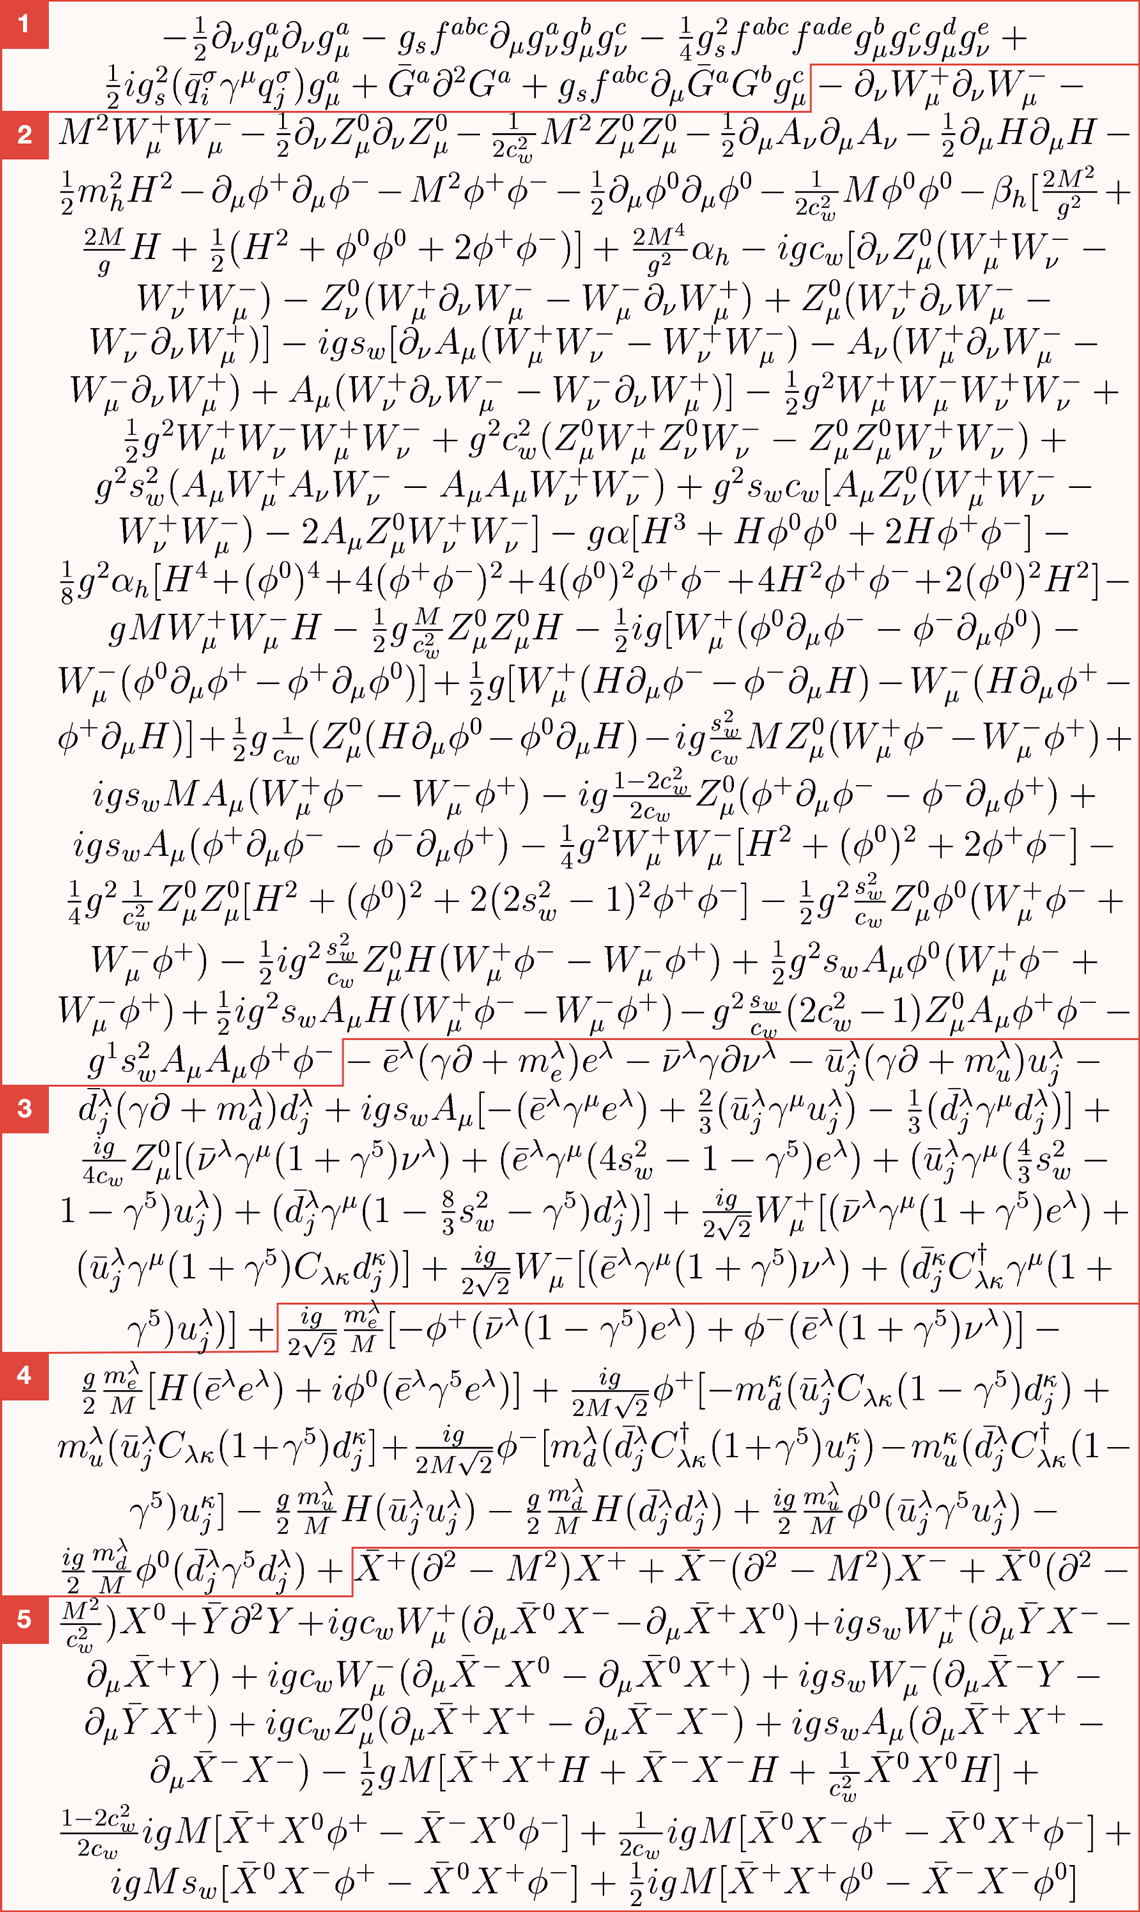 Standard Model Equation That Might Explain The Life The